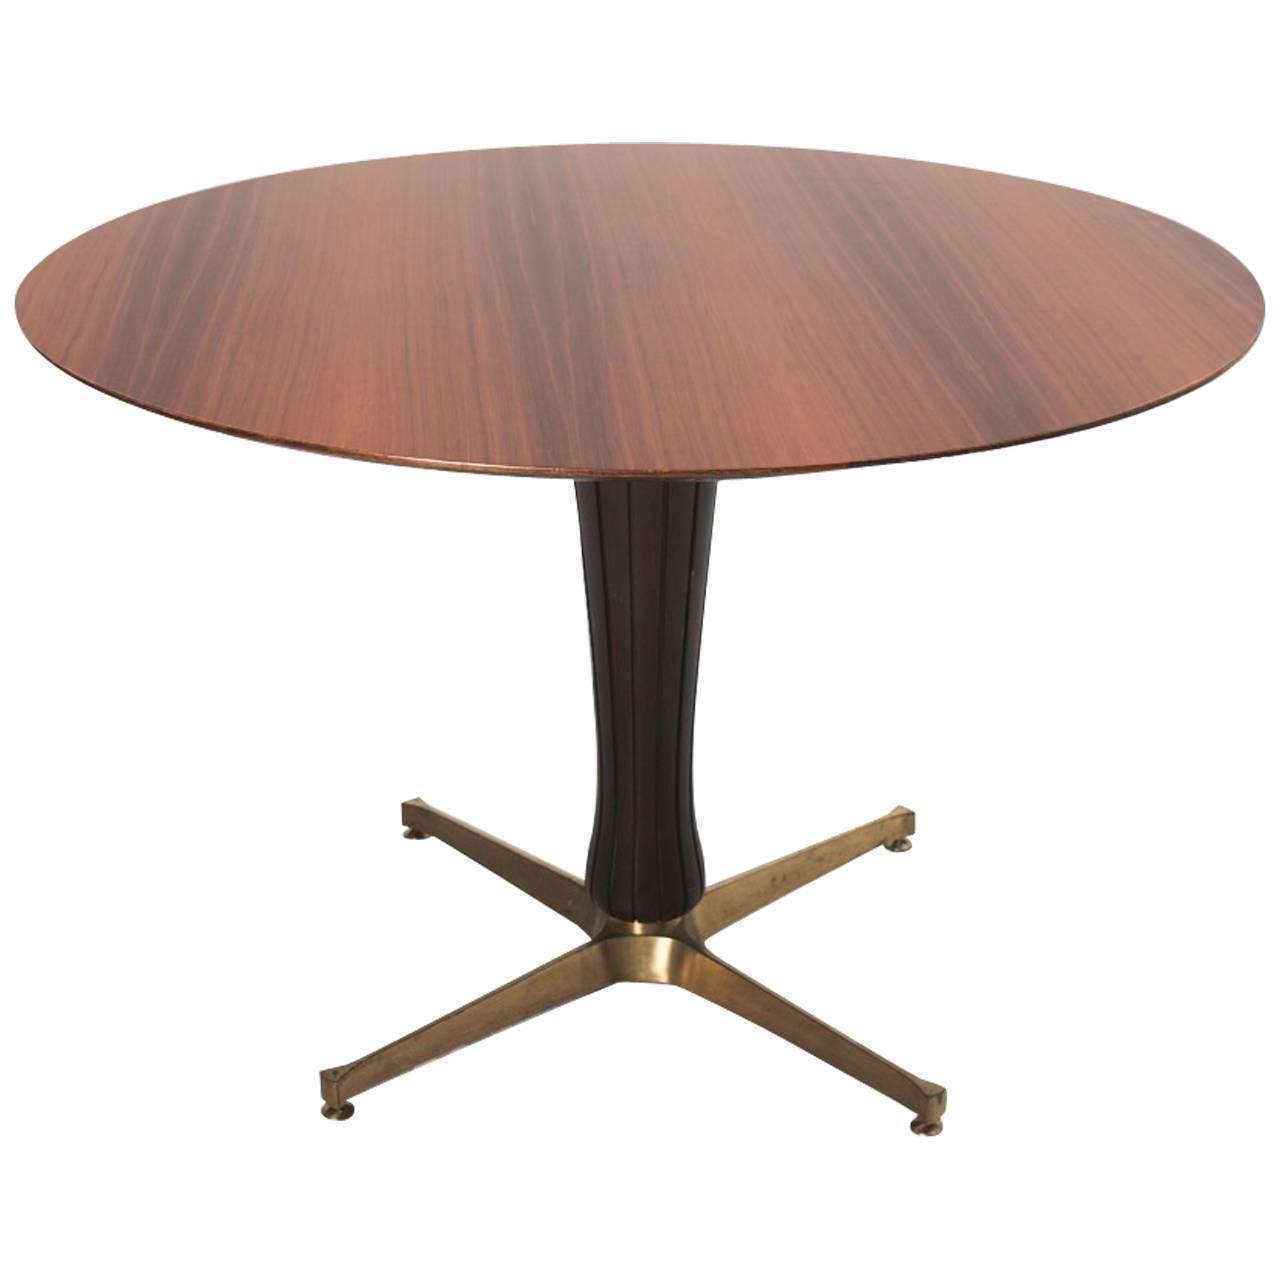 Modernist Fifties Pedestal Dining Table Italian Design